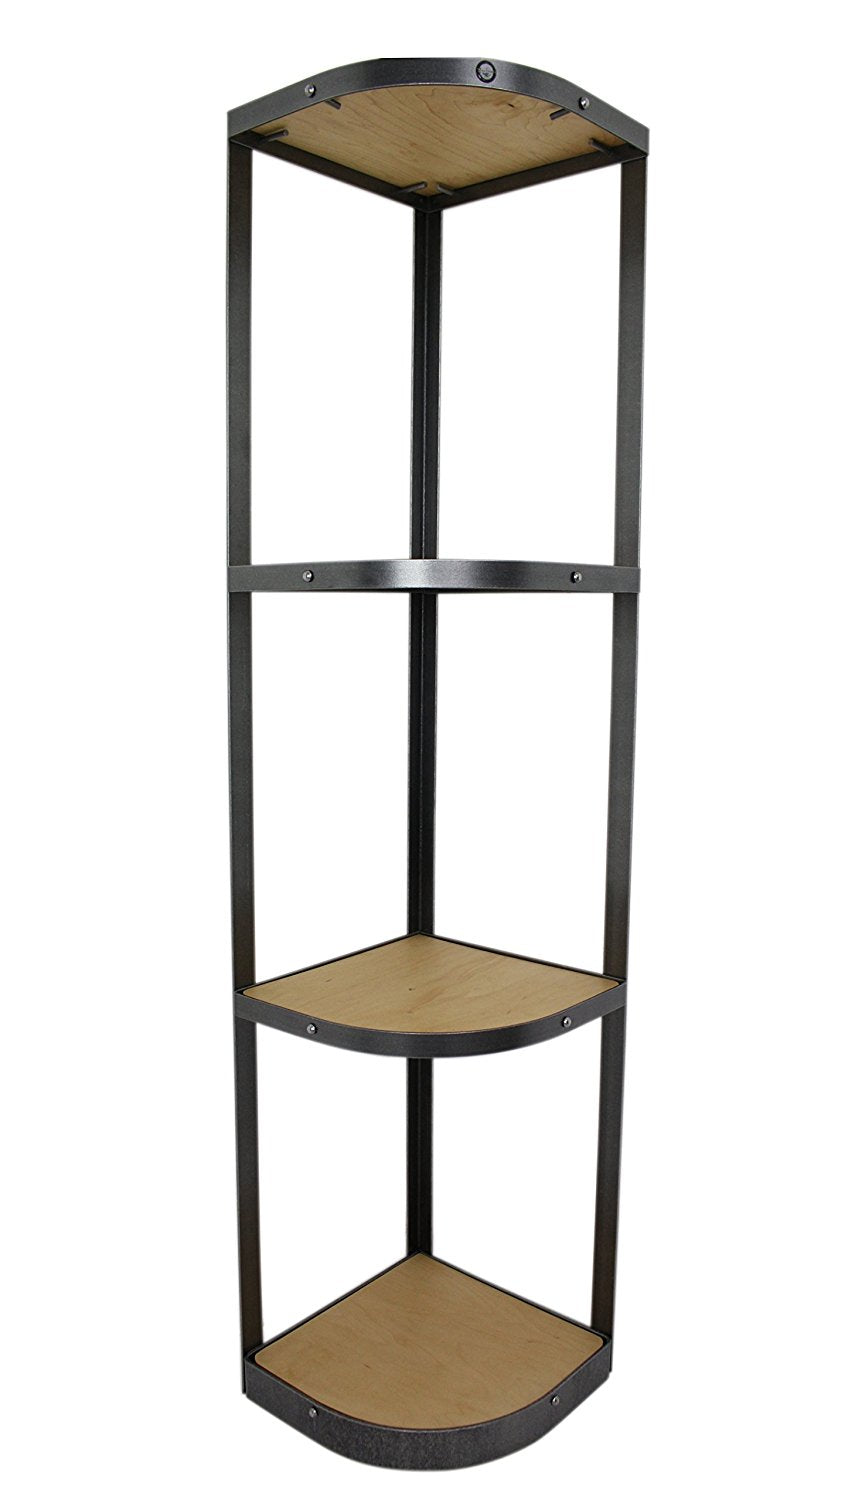 4-Tier Designer Corner Stand, Hammered Steel, Unassembled - Pot Racks Plus